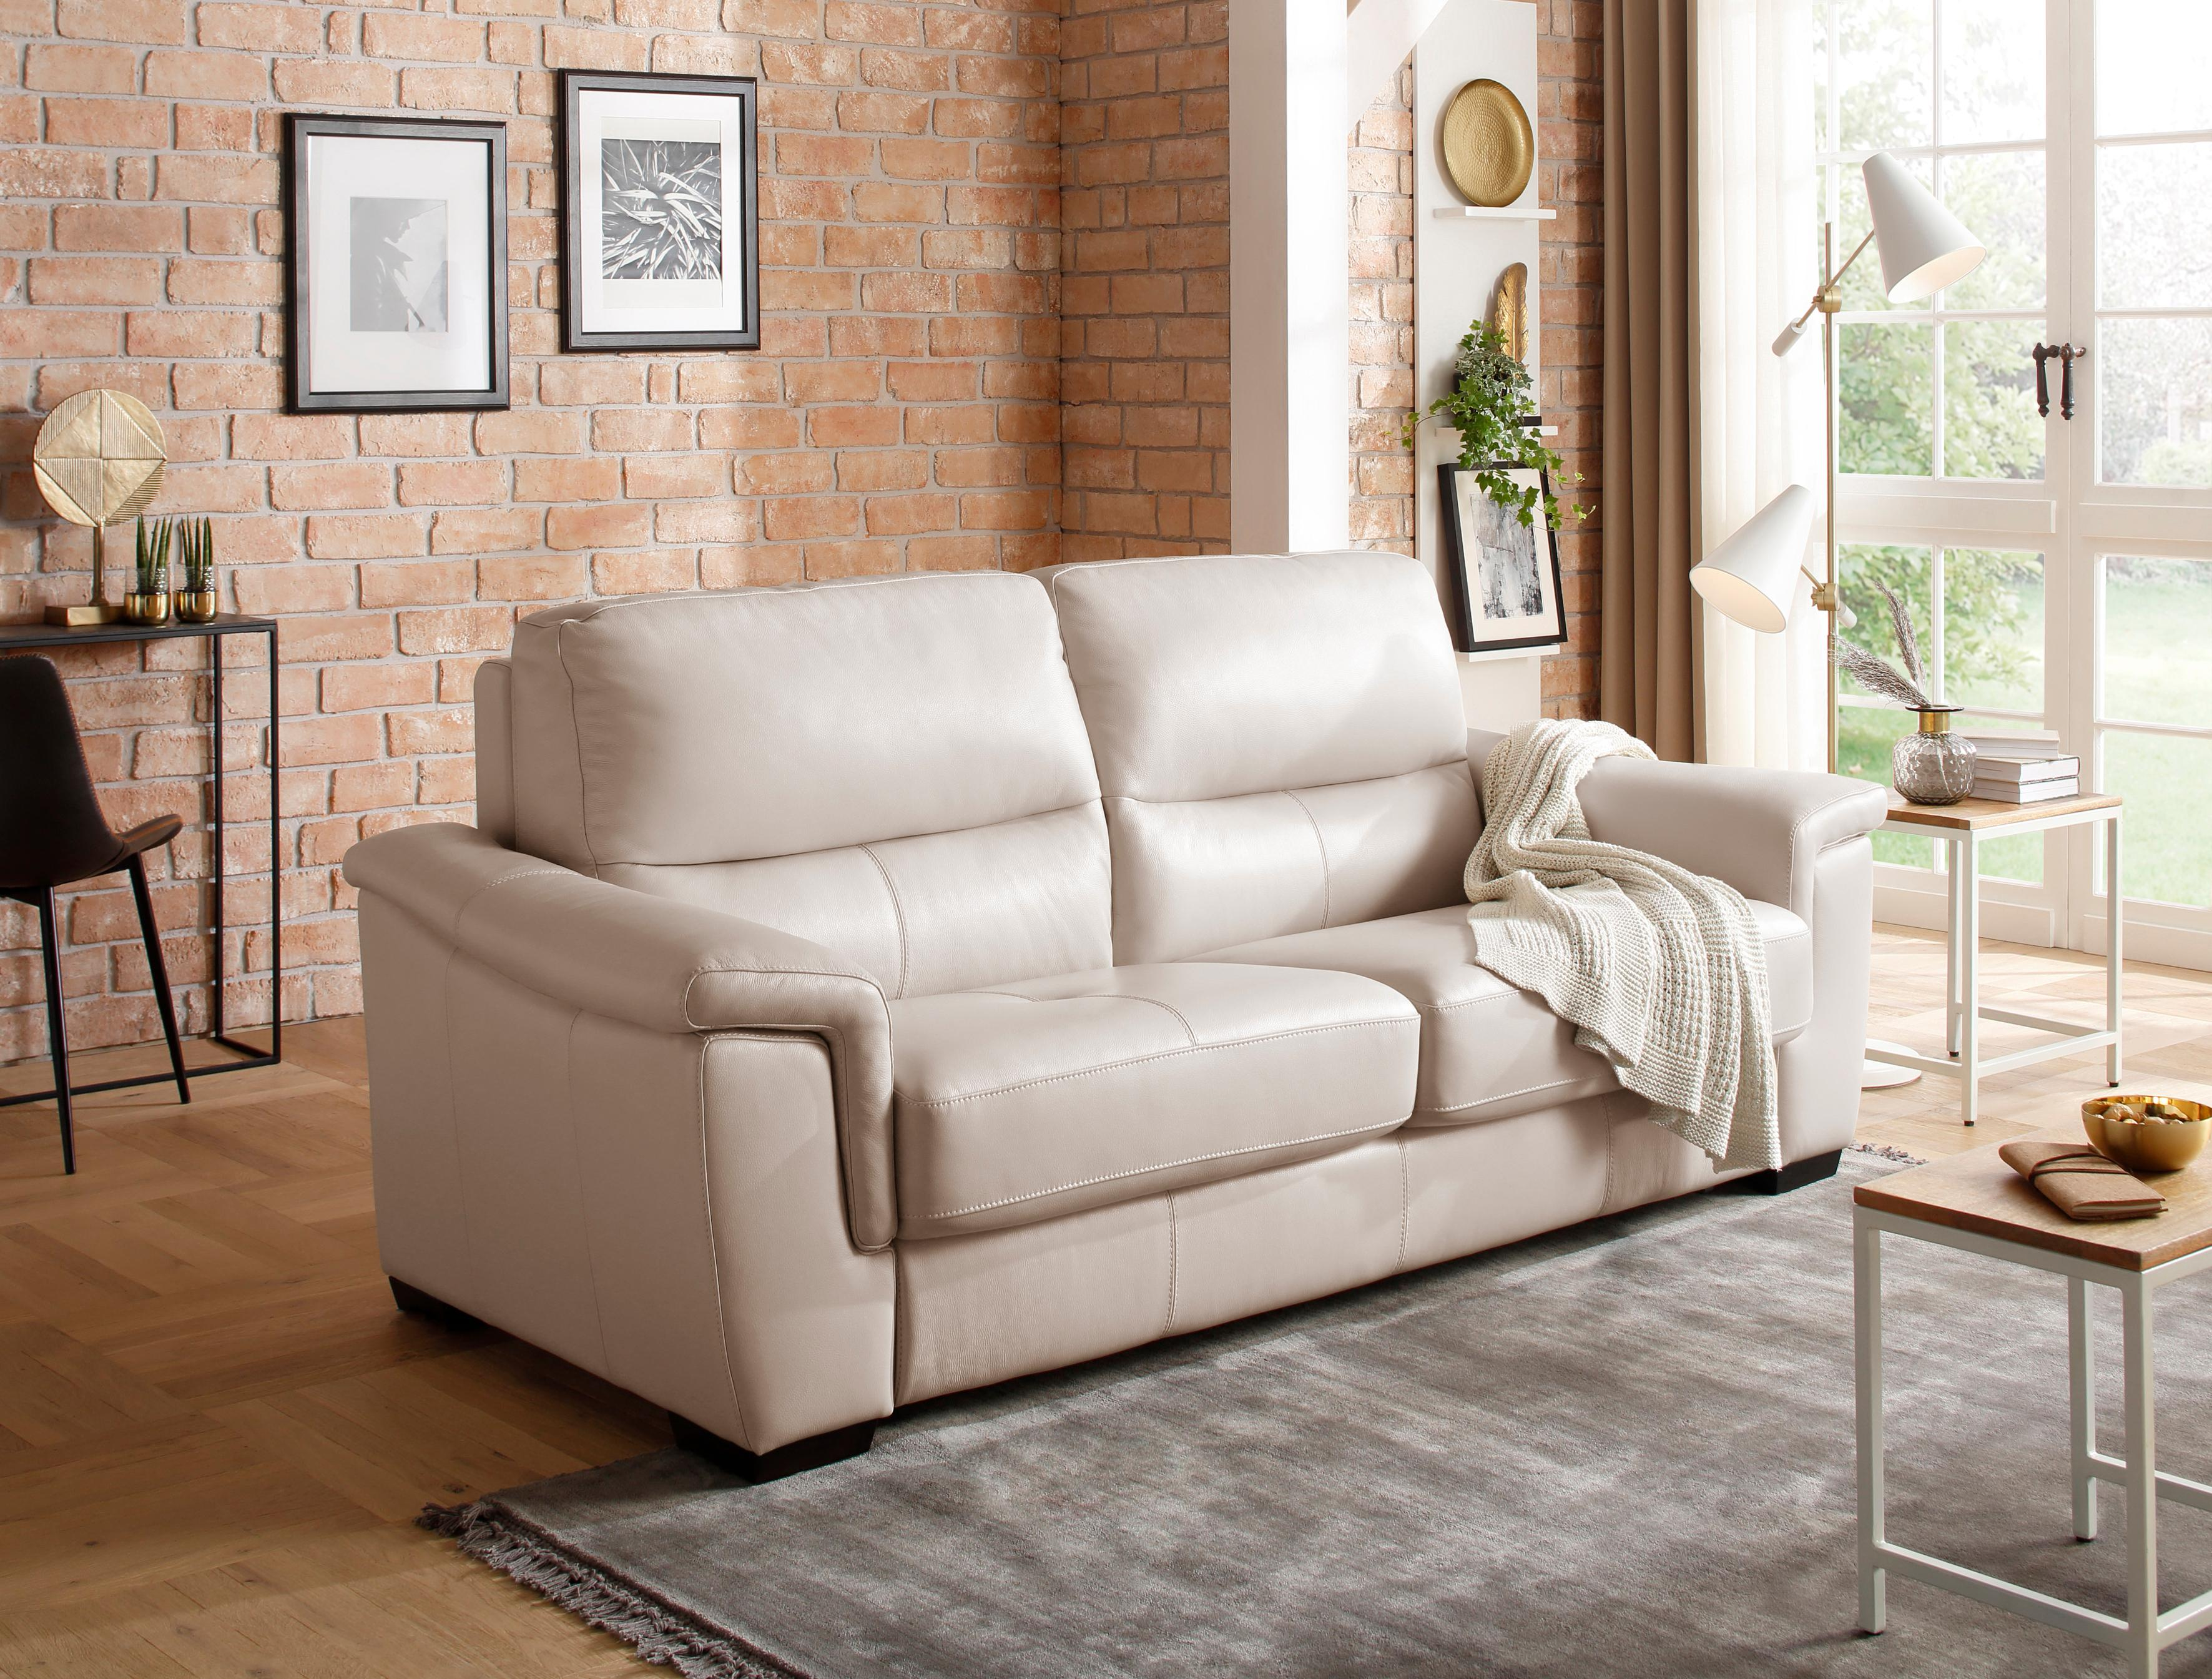 Premium collection by Home affaire Schlafsofa Amrum